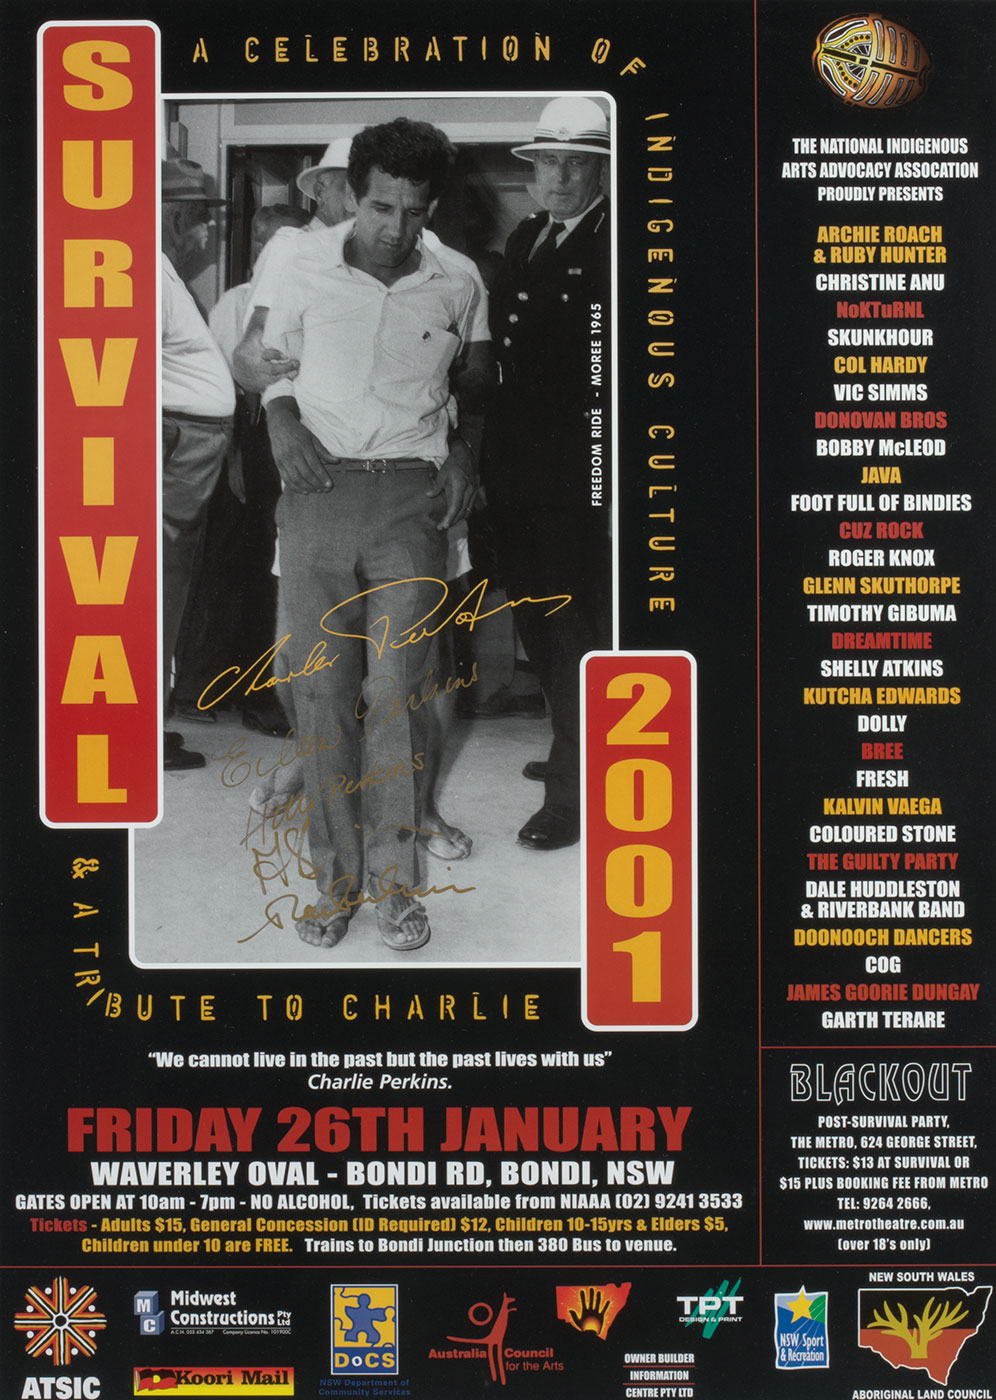 A colour poster featuring a black and white photograph of a man in a white shirt, dark pants and thongs. The photograph has a yellow handwritten signature 'Charlie Perkins' printed across it. Text framing the photograph reads 'SURVIVAL / 2001' 'A CELEBRATION OF INDIGENOUS CULTURE / & A TRIBUTE TO CHARLIE'. The poster includes a list of perfomring artists on the right and sponsor logos along the bottom. - click to view larger image